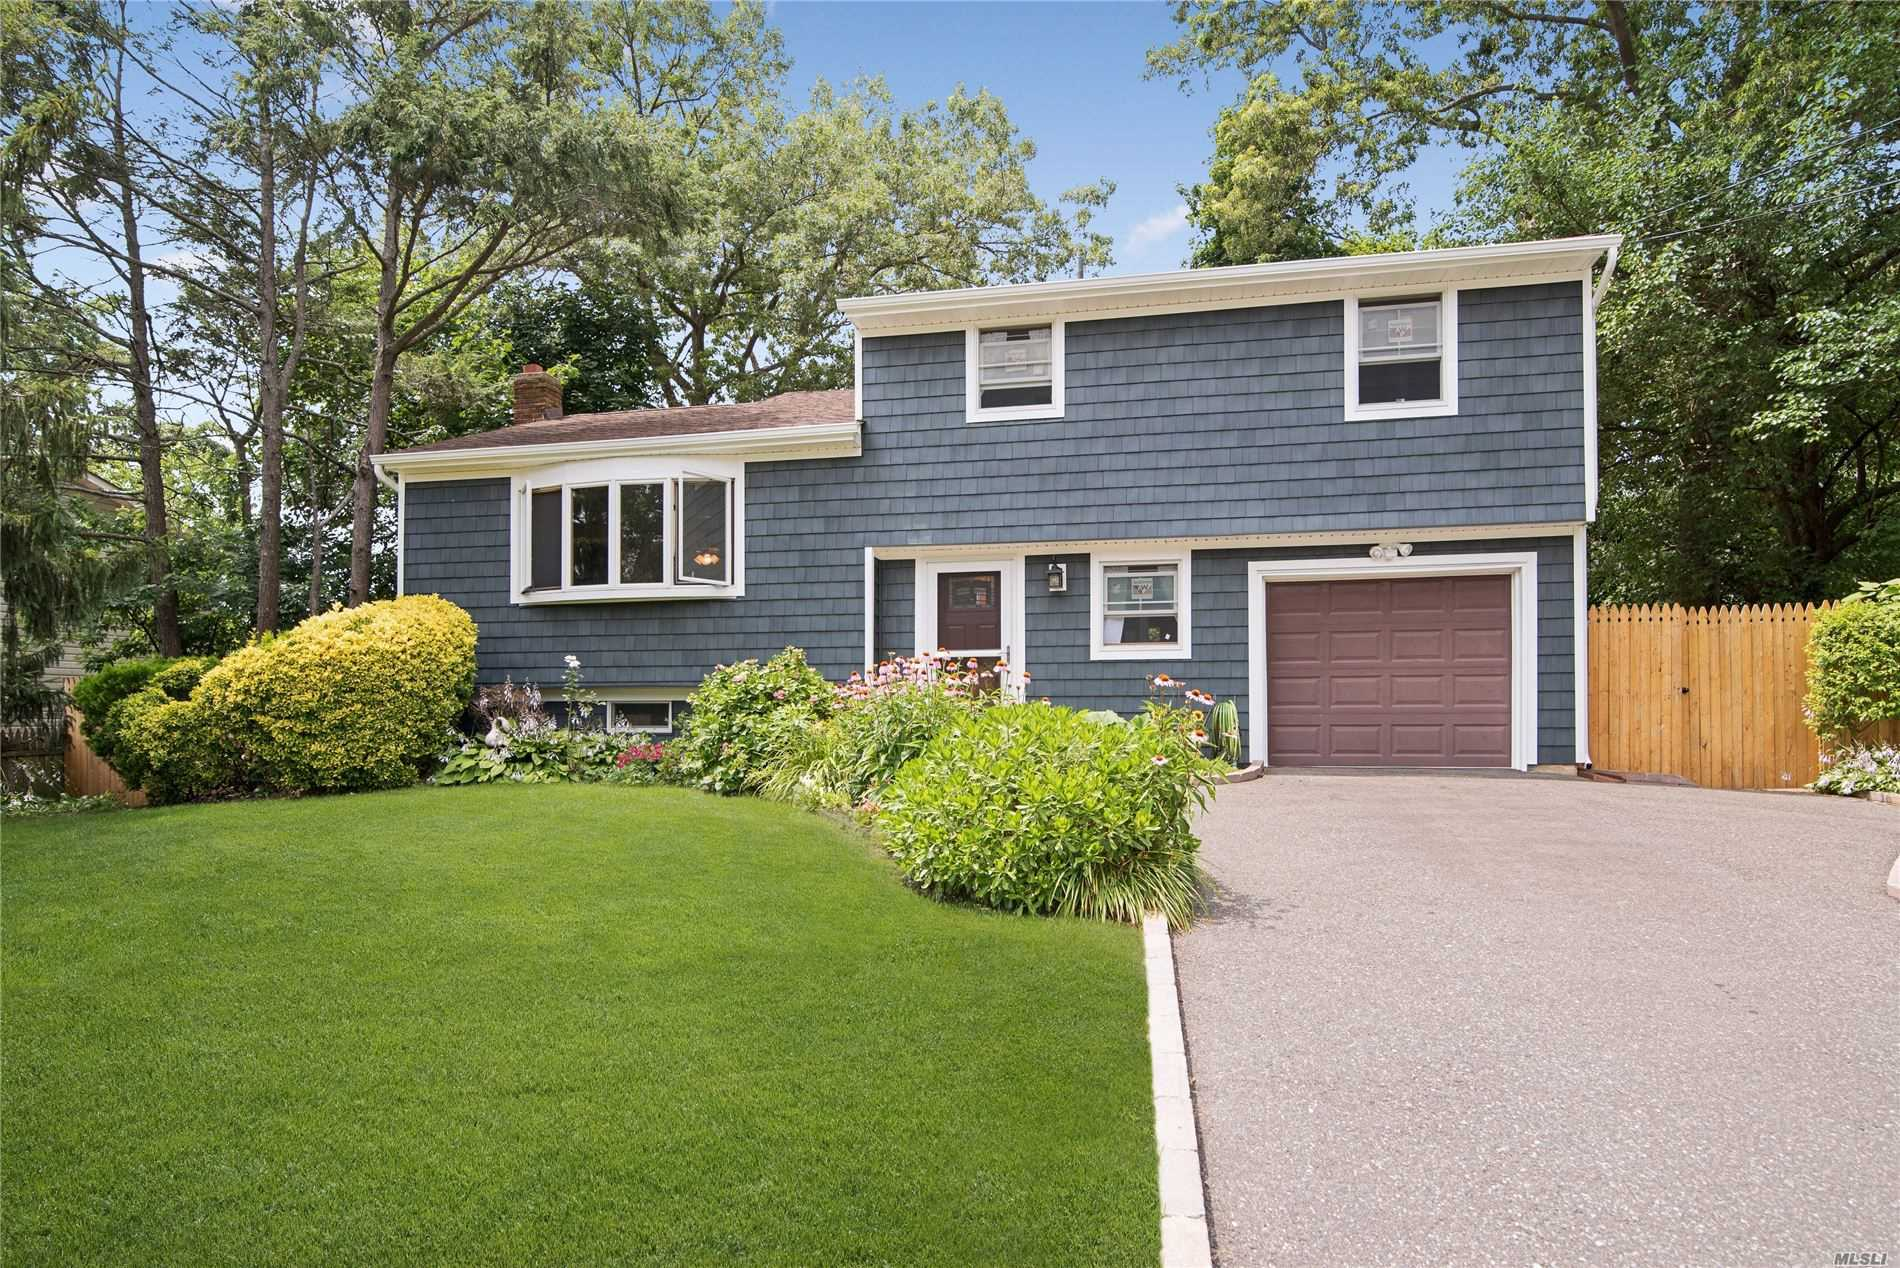 8 Biscayne Dr - Selden, New York